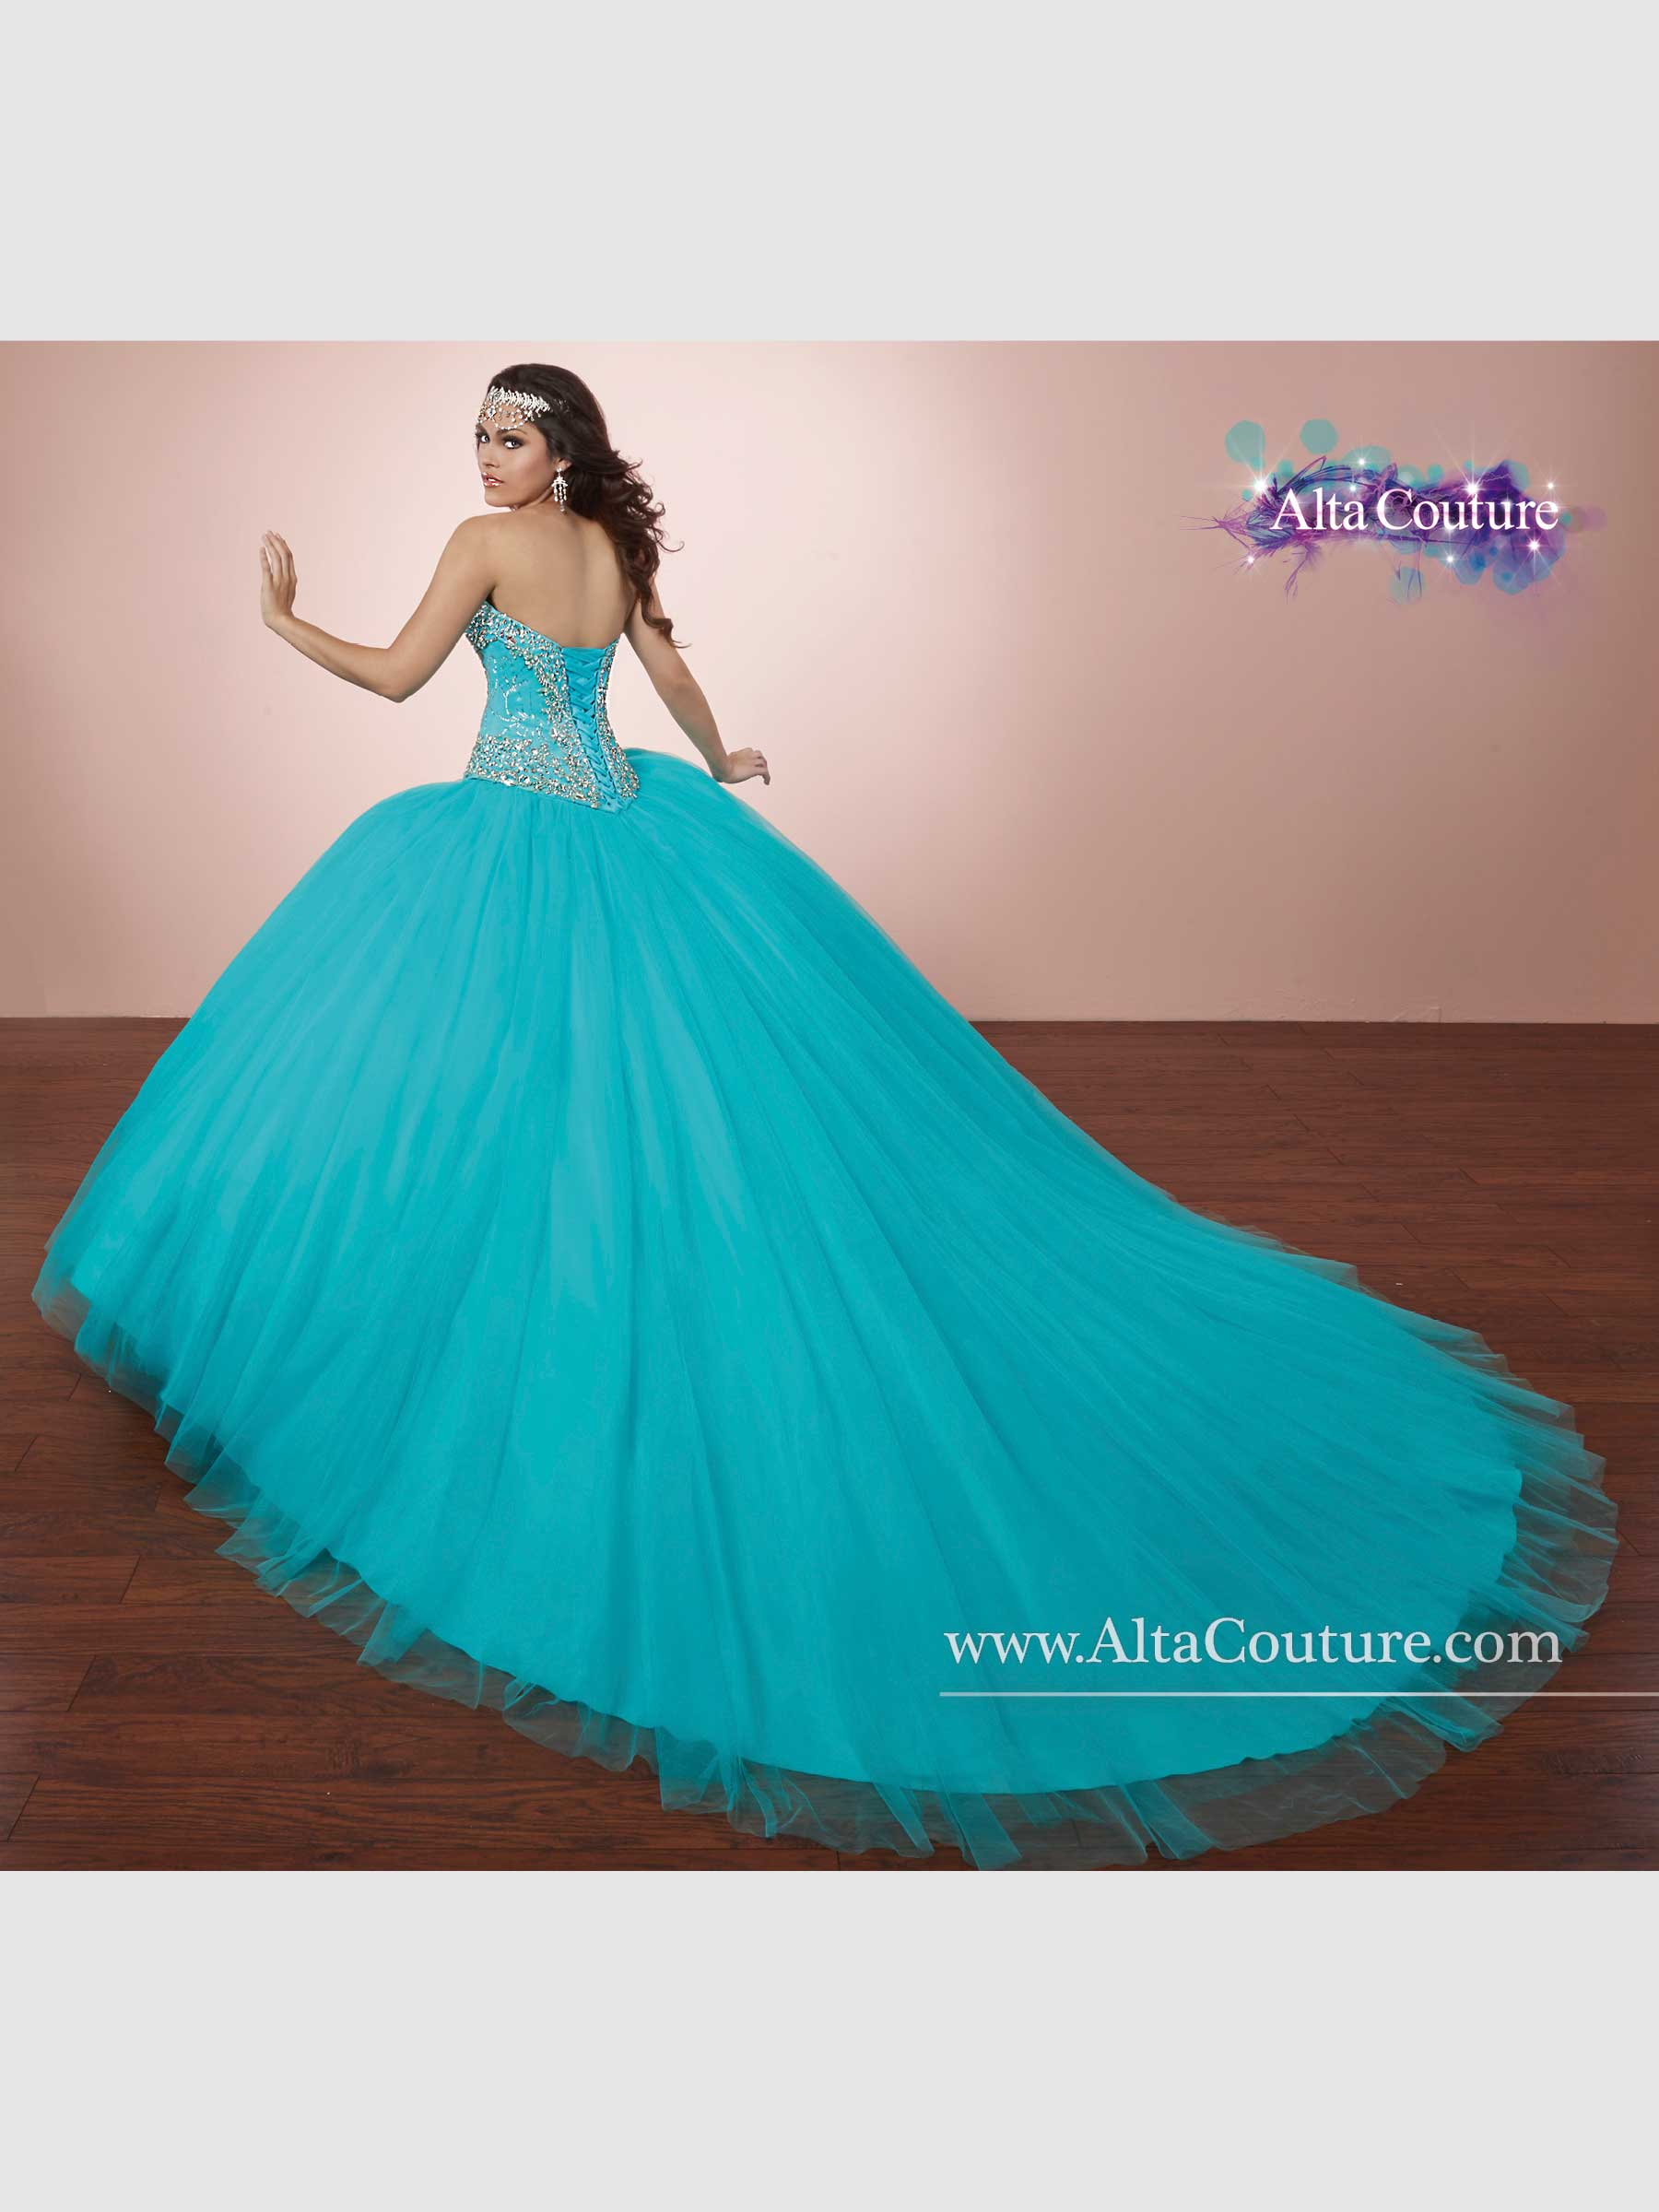 Style f16 4t170 scelebrations for Alta couture